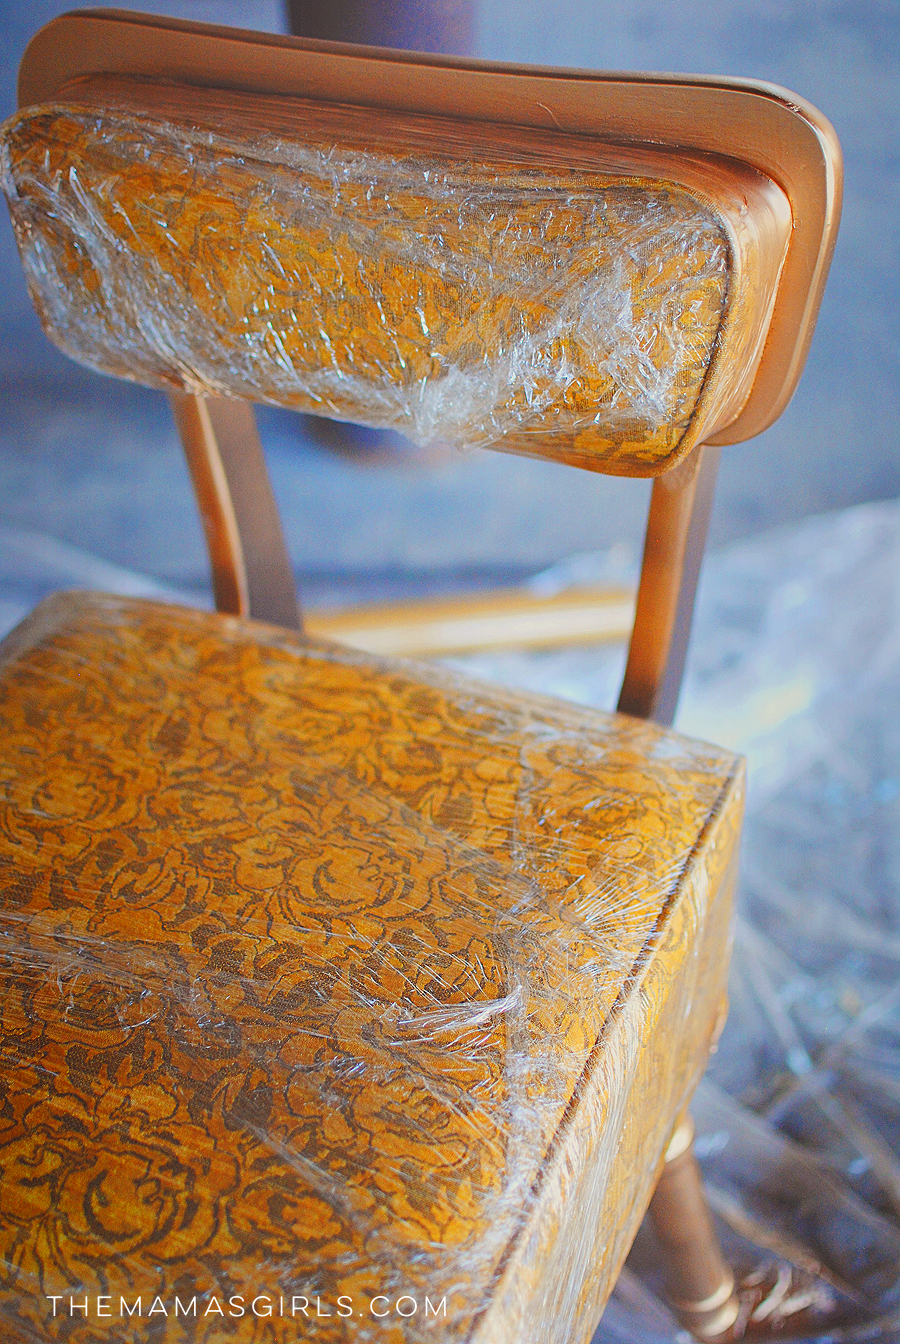 diy rocking chair kit covers for purchase how to mask off furniture when spray painting with plastic wrap